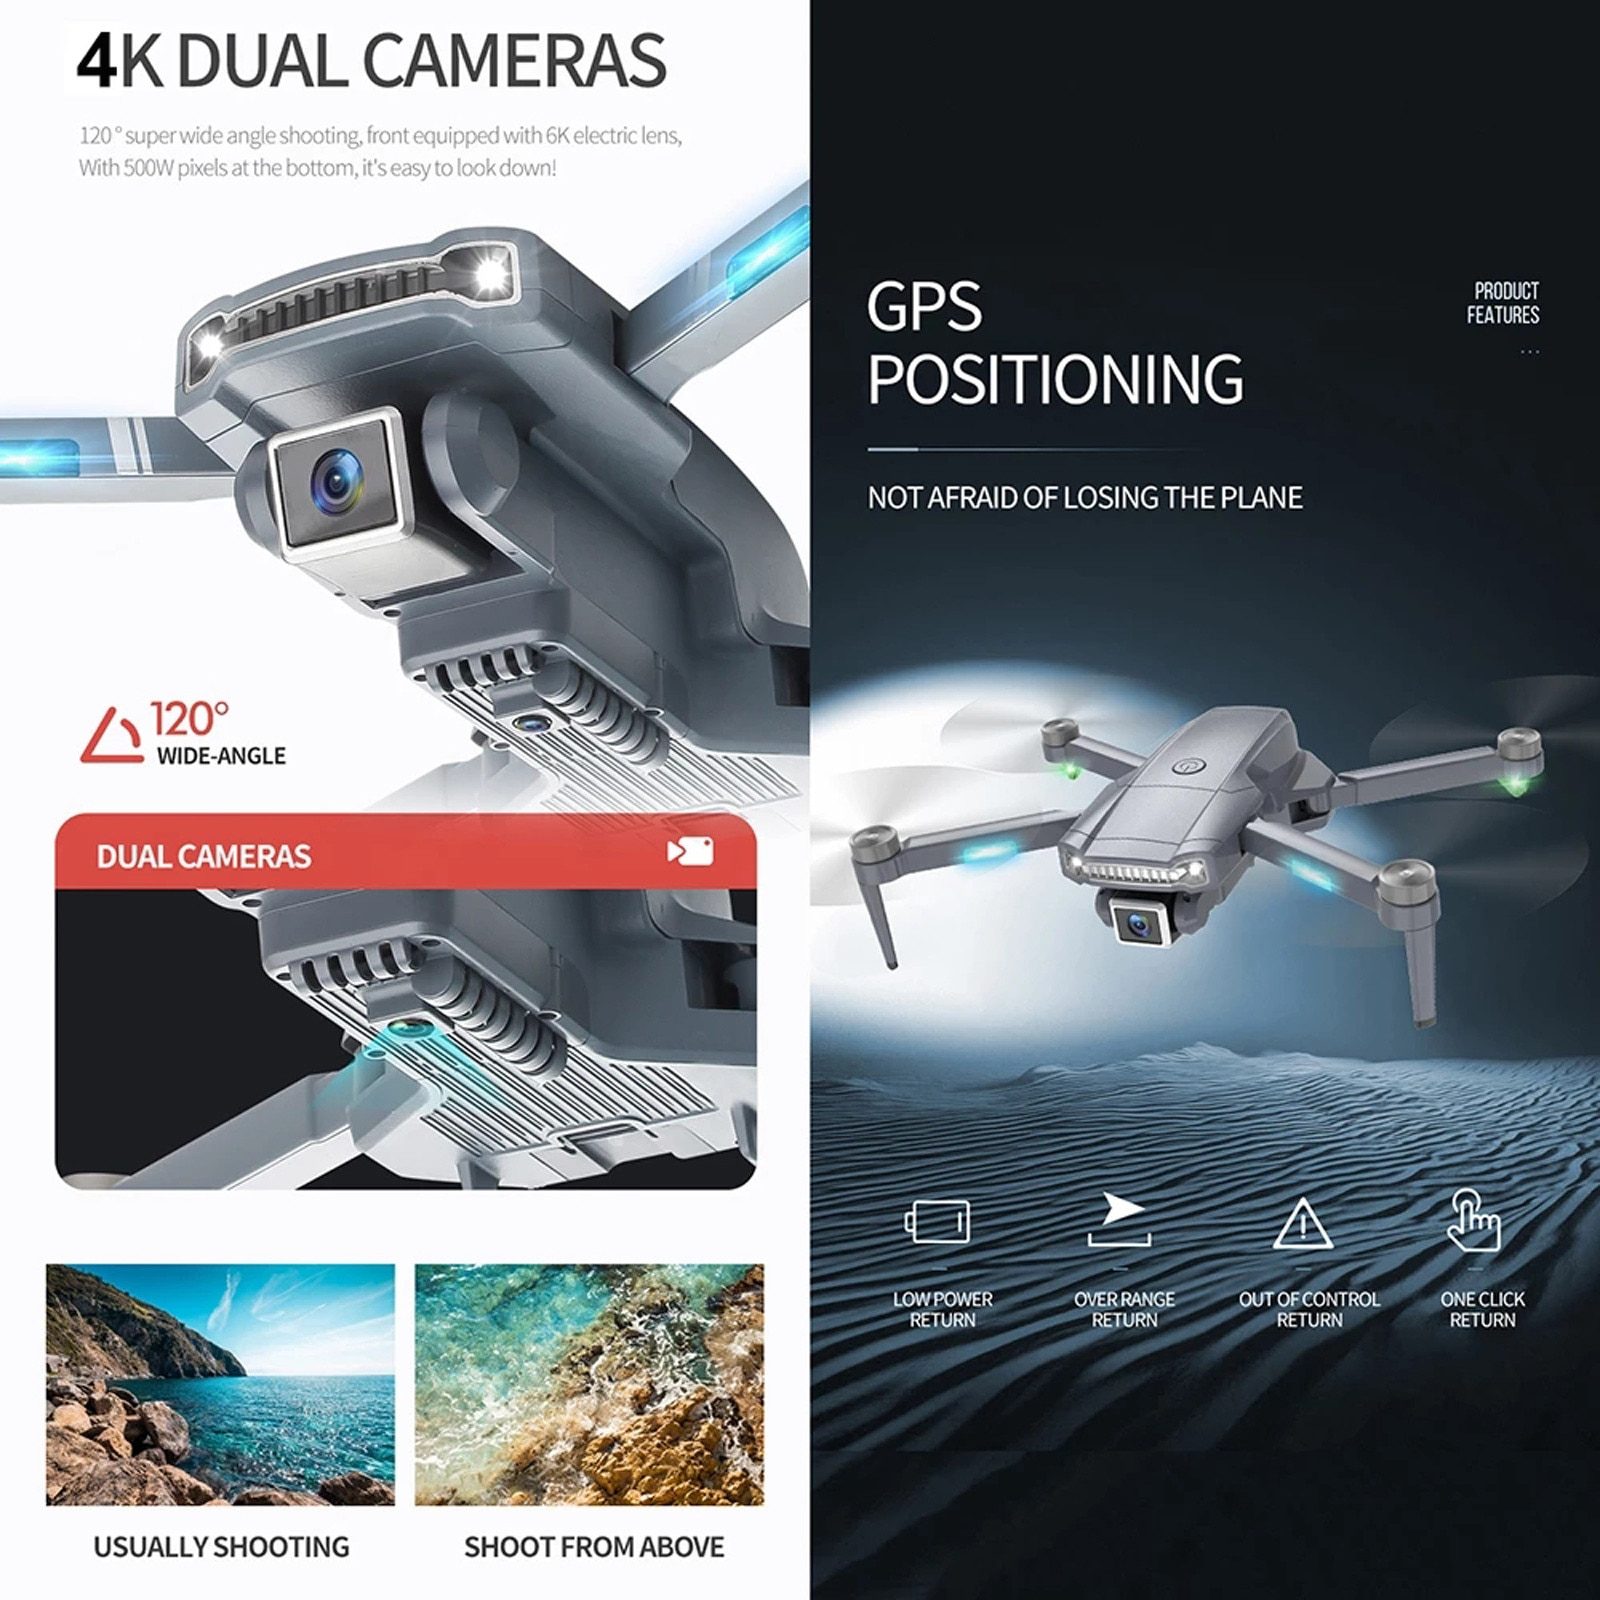 RC Dron S179 Long Distance Drone 4k Hd Camera Gps Automatic Return Professional 5g Wifi Fpv Brushless Foldable Quadcopter #F